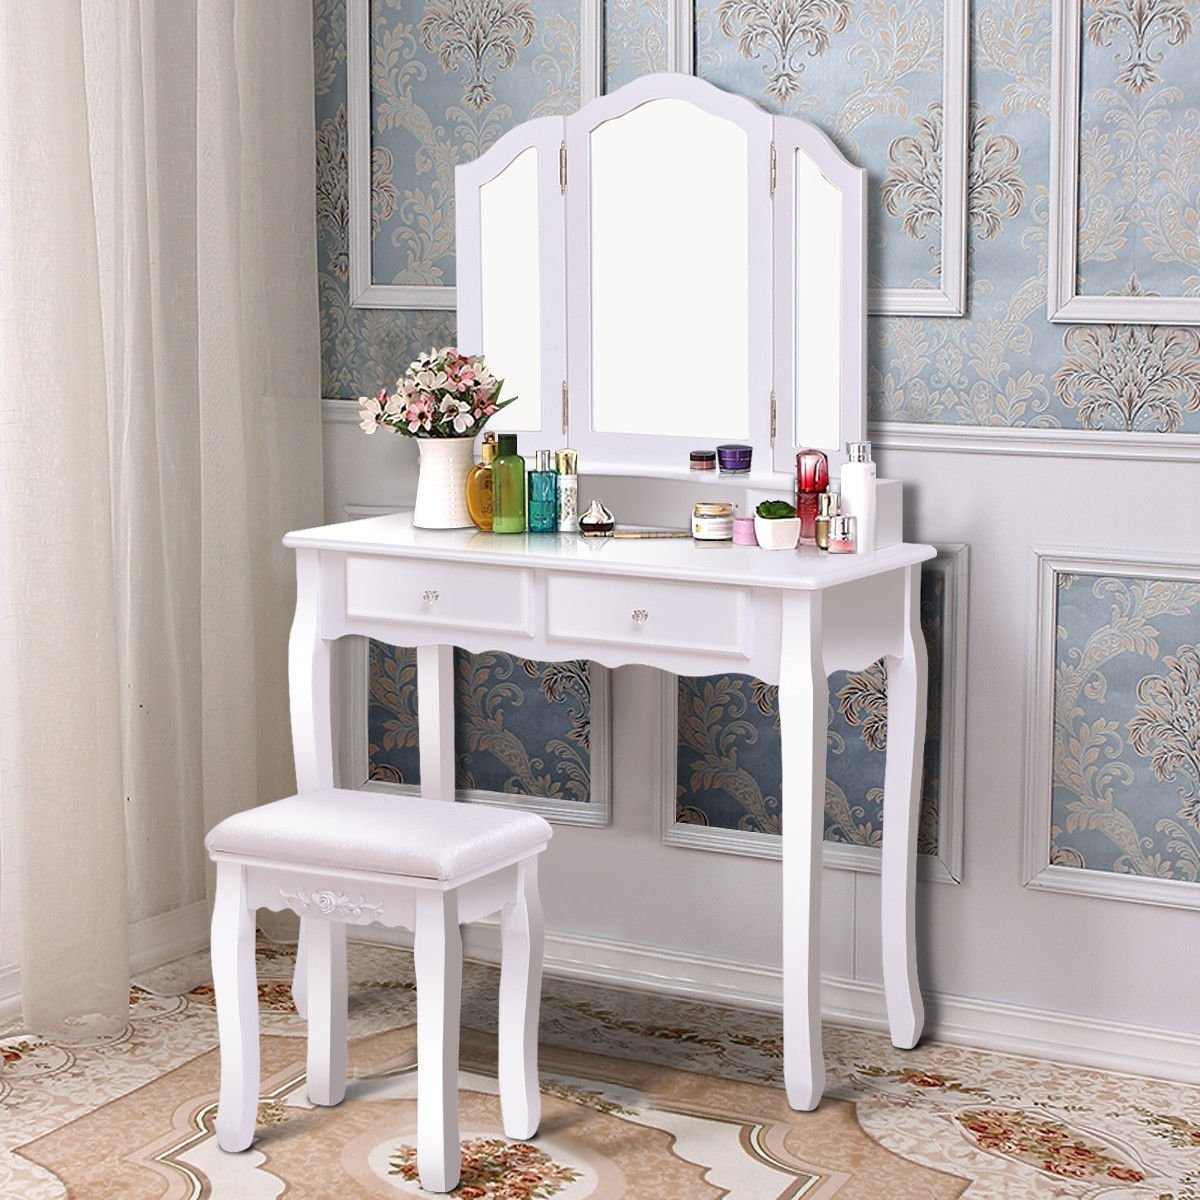 Giantex Tri Folding Mirror Bathroom Vanity Makeup Table Stool Set Home Furni With 4 Drawers (White